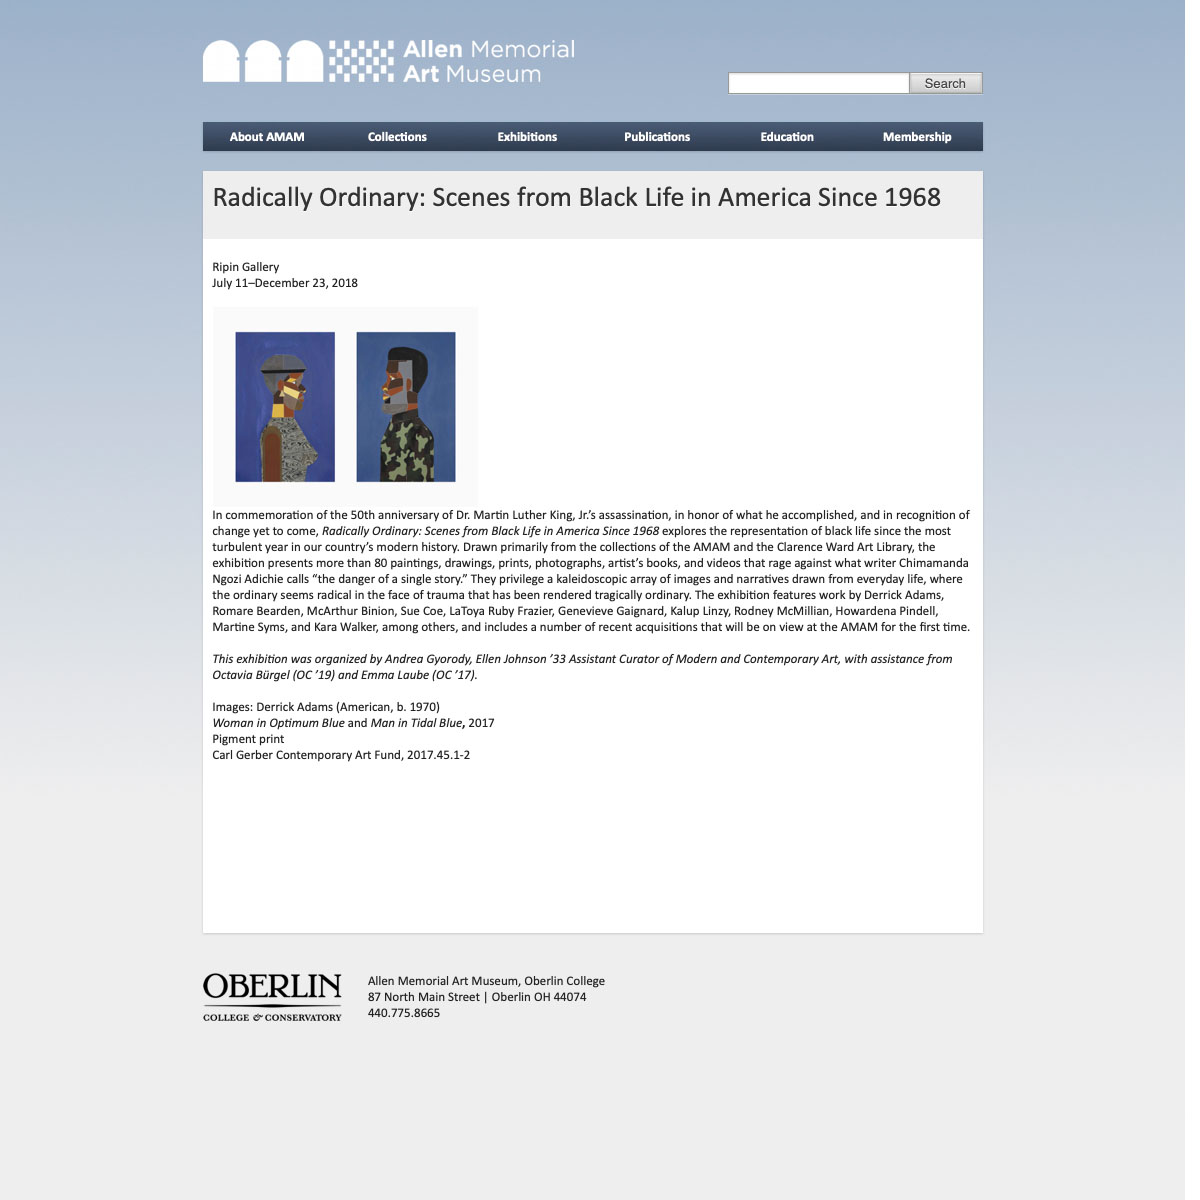 2018-07-11_Allen Memorial Art Museum (Oberlin College), Radically Ordinary_ Scenes from Black Life in America Since 1968, 2018.jpg